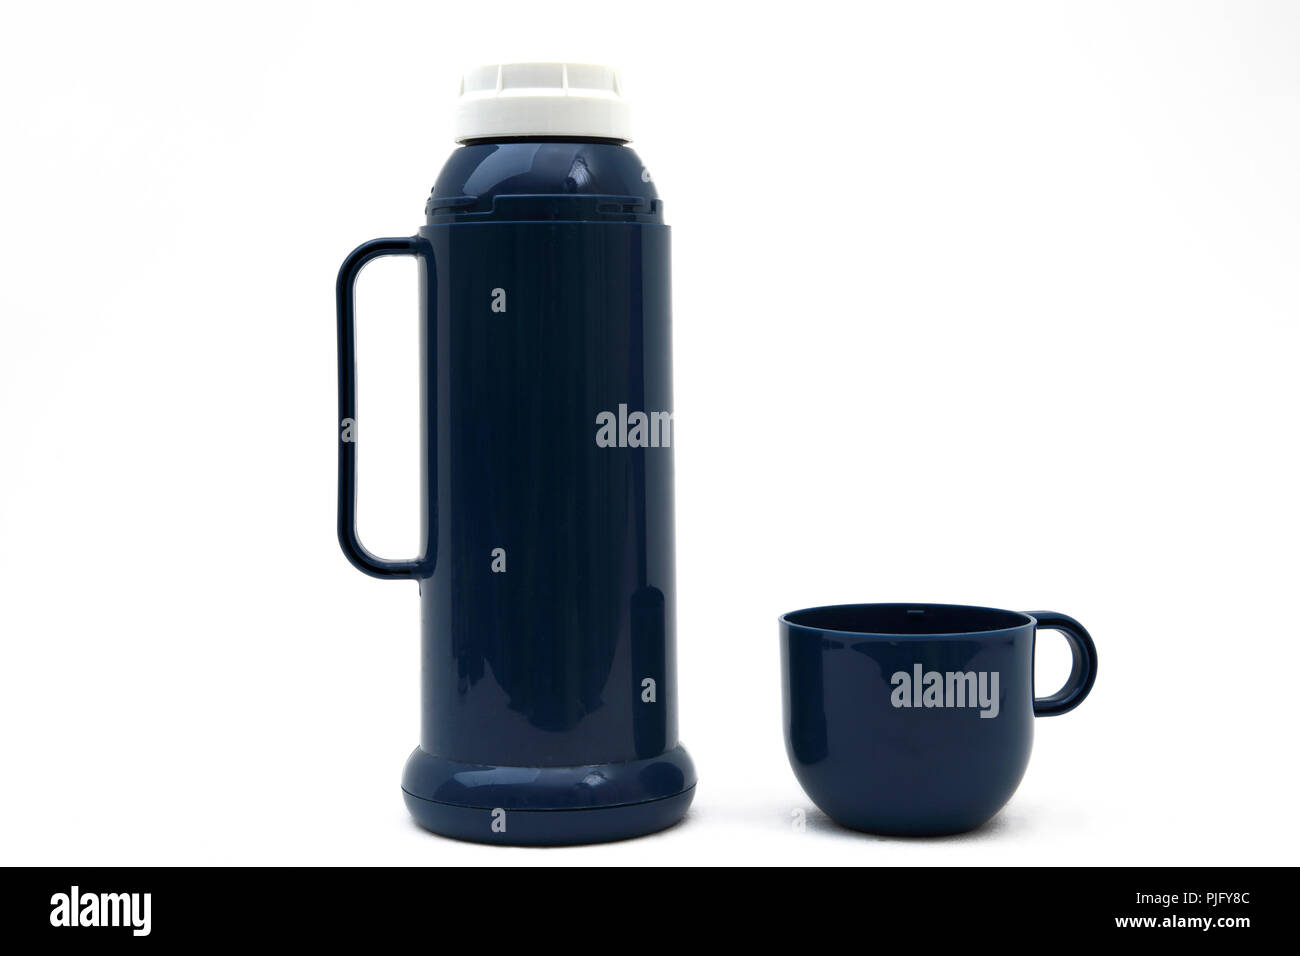 Thermos Flask Stock Photos & Thermos Flask Stock Images - Alamy